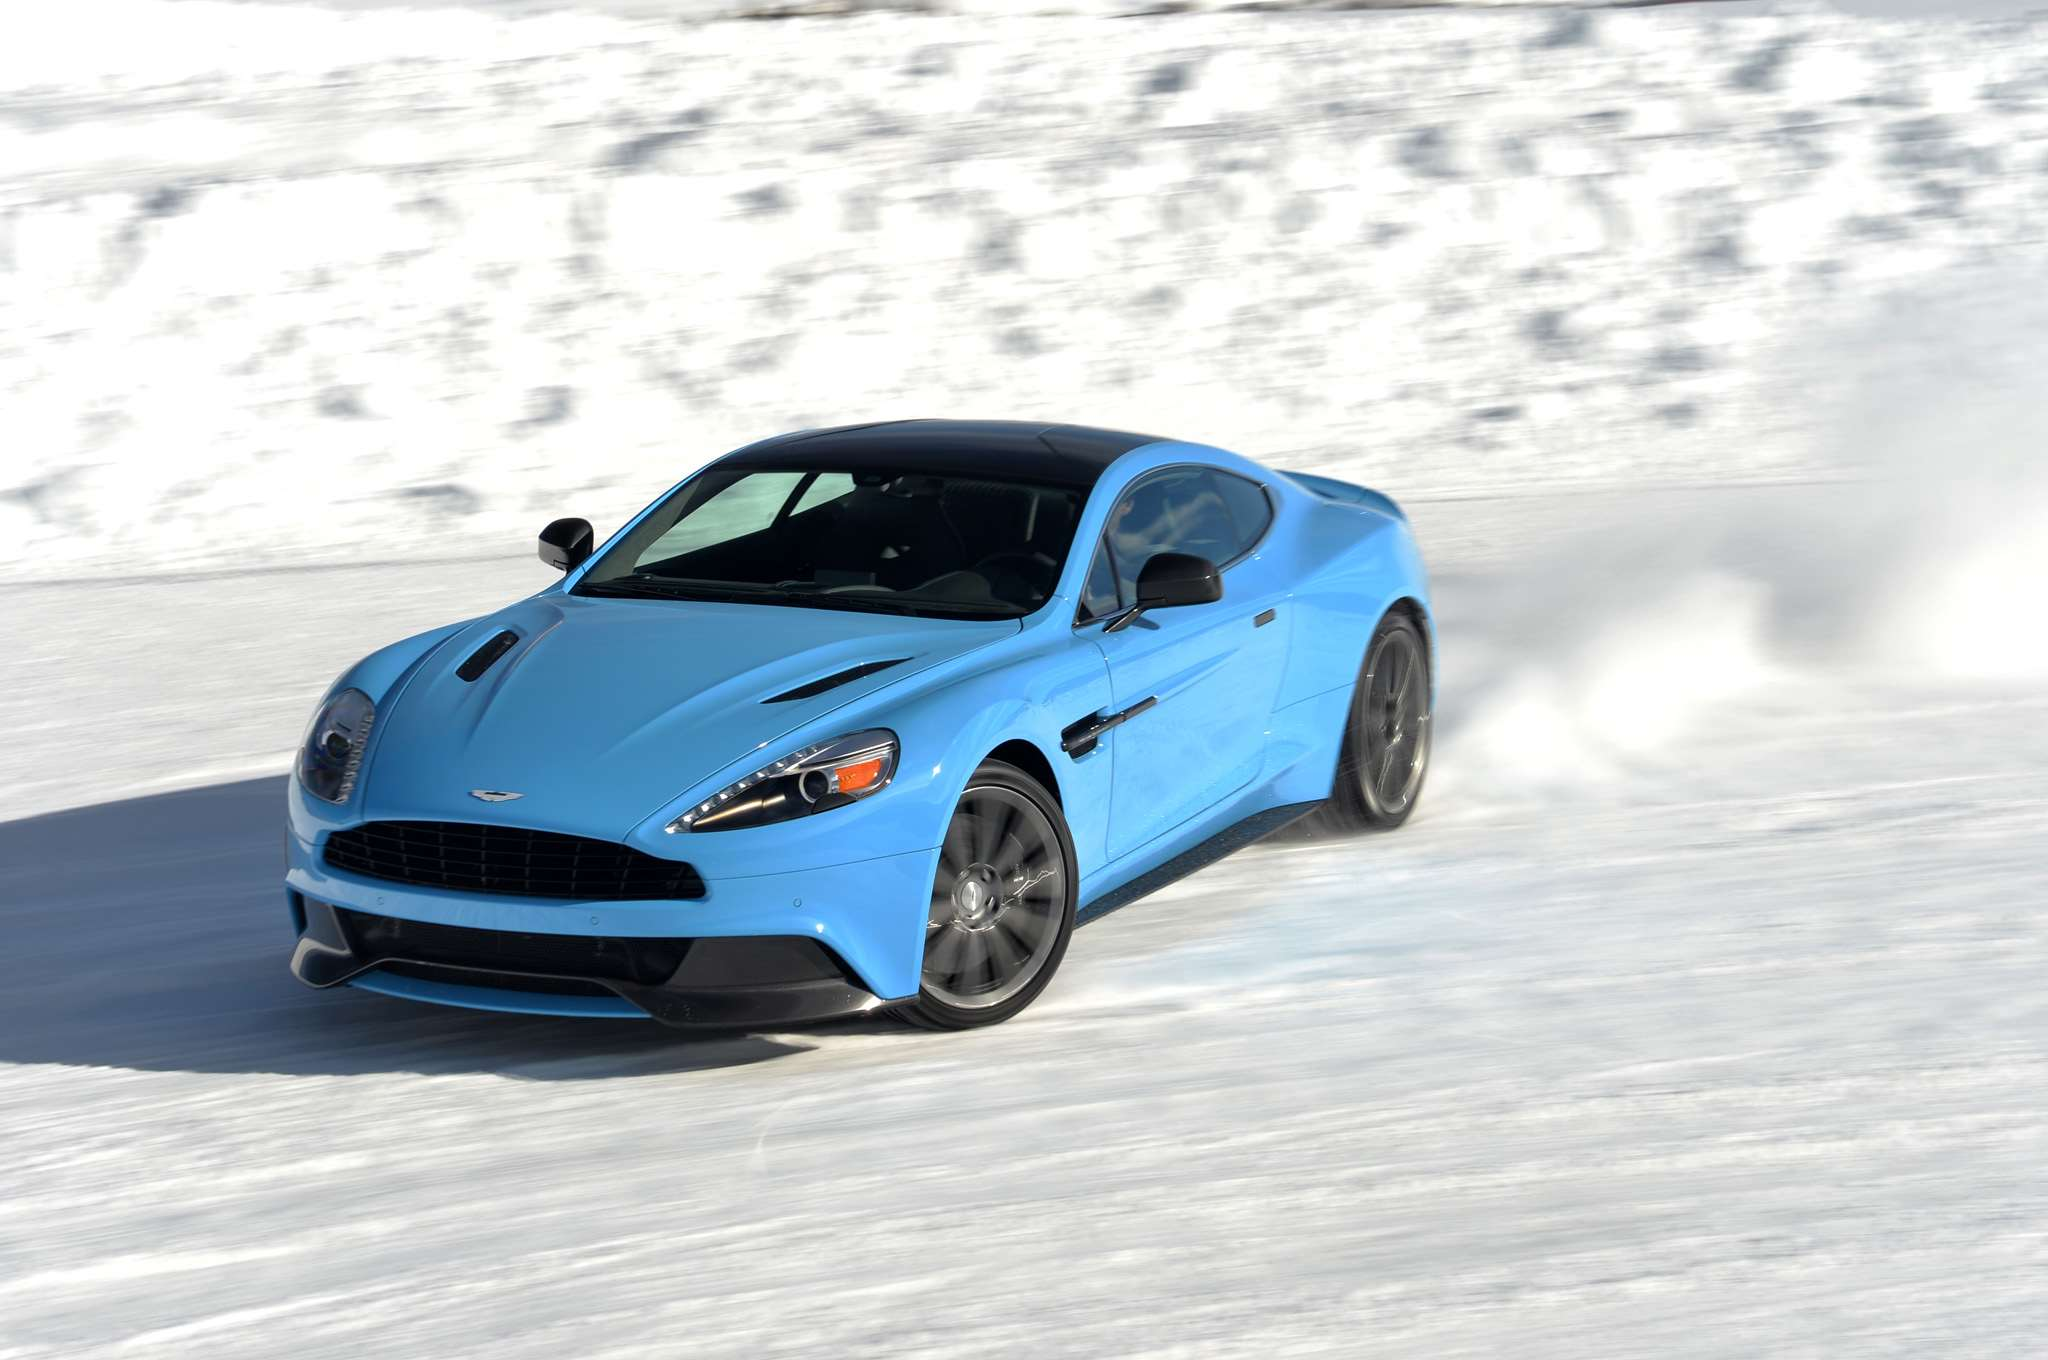 Driving An Aston Martin Vantage On A Frozen Lake